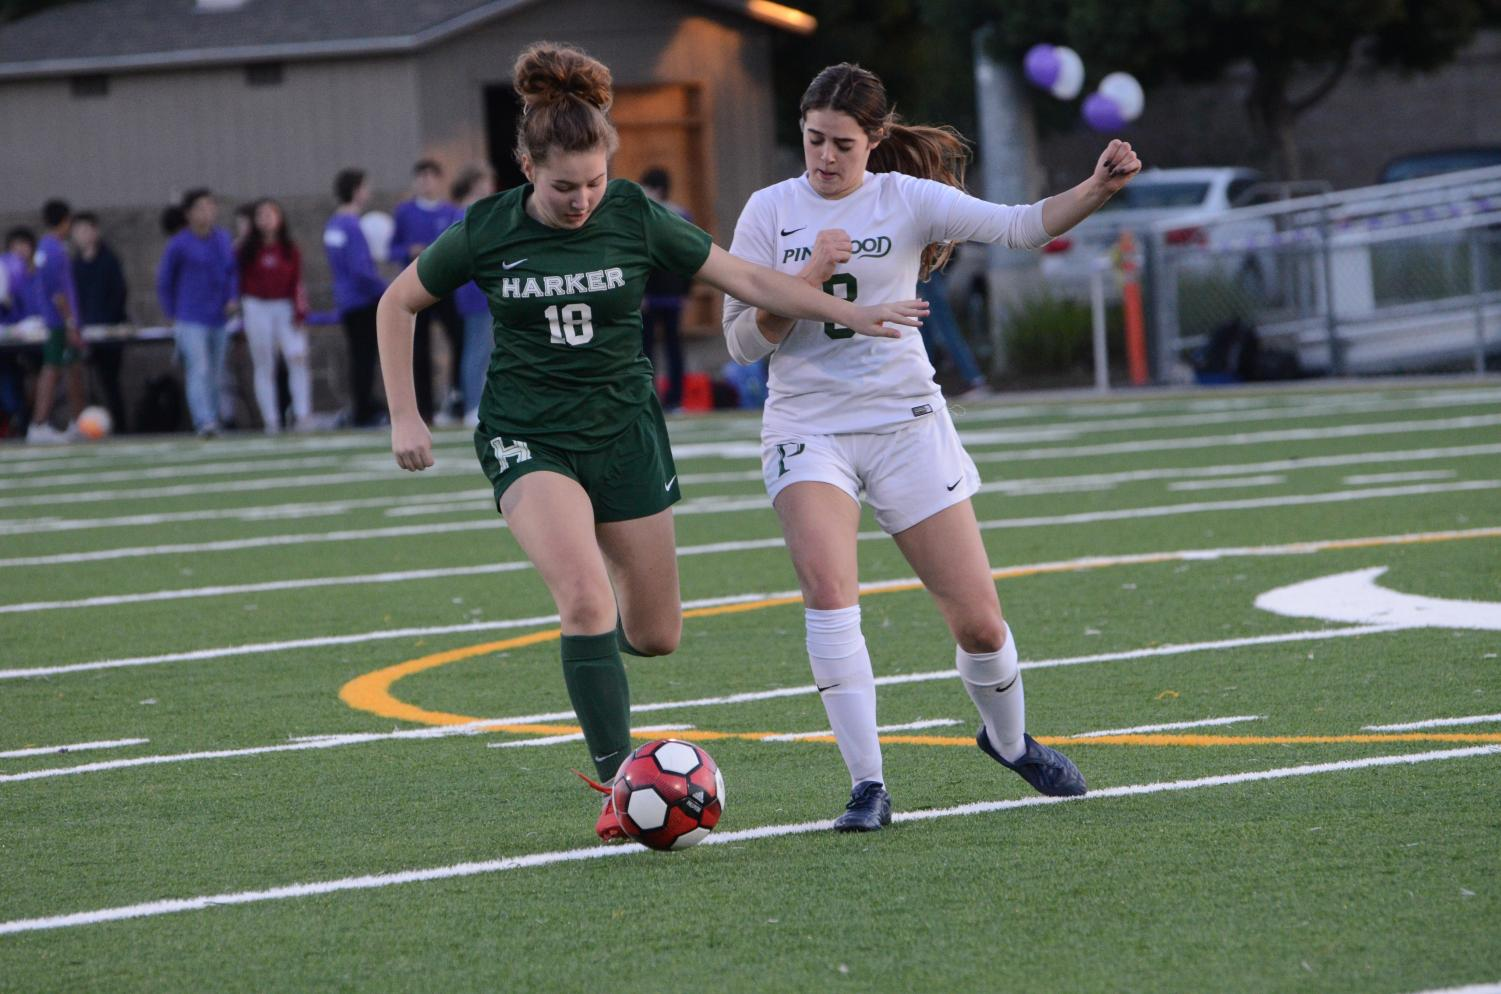 Kate Leafstrand (9) controls  the ball as a Pinewood player chases after her. The varsity girls won 5-0 against Pinewood.